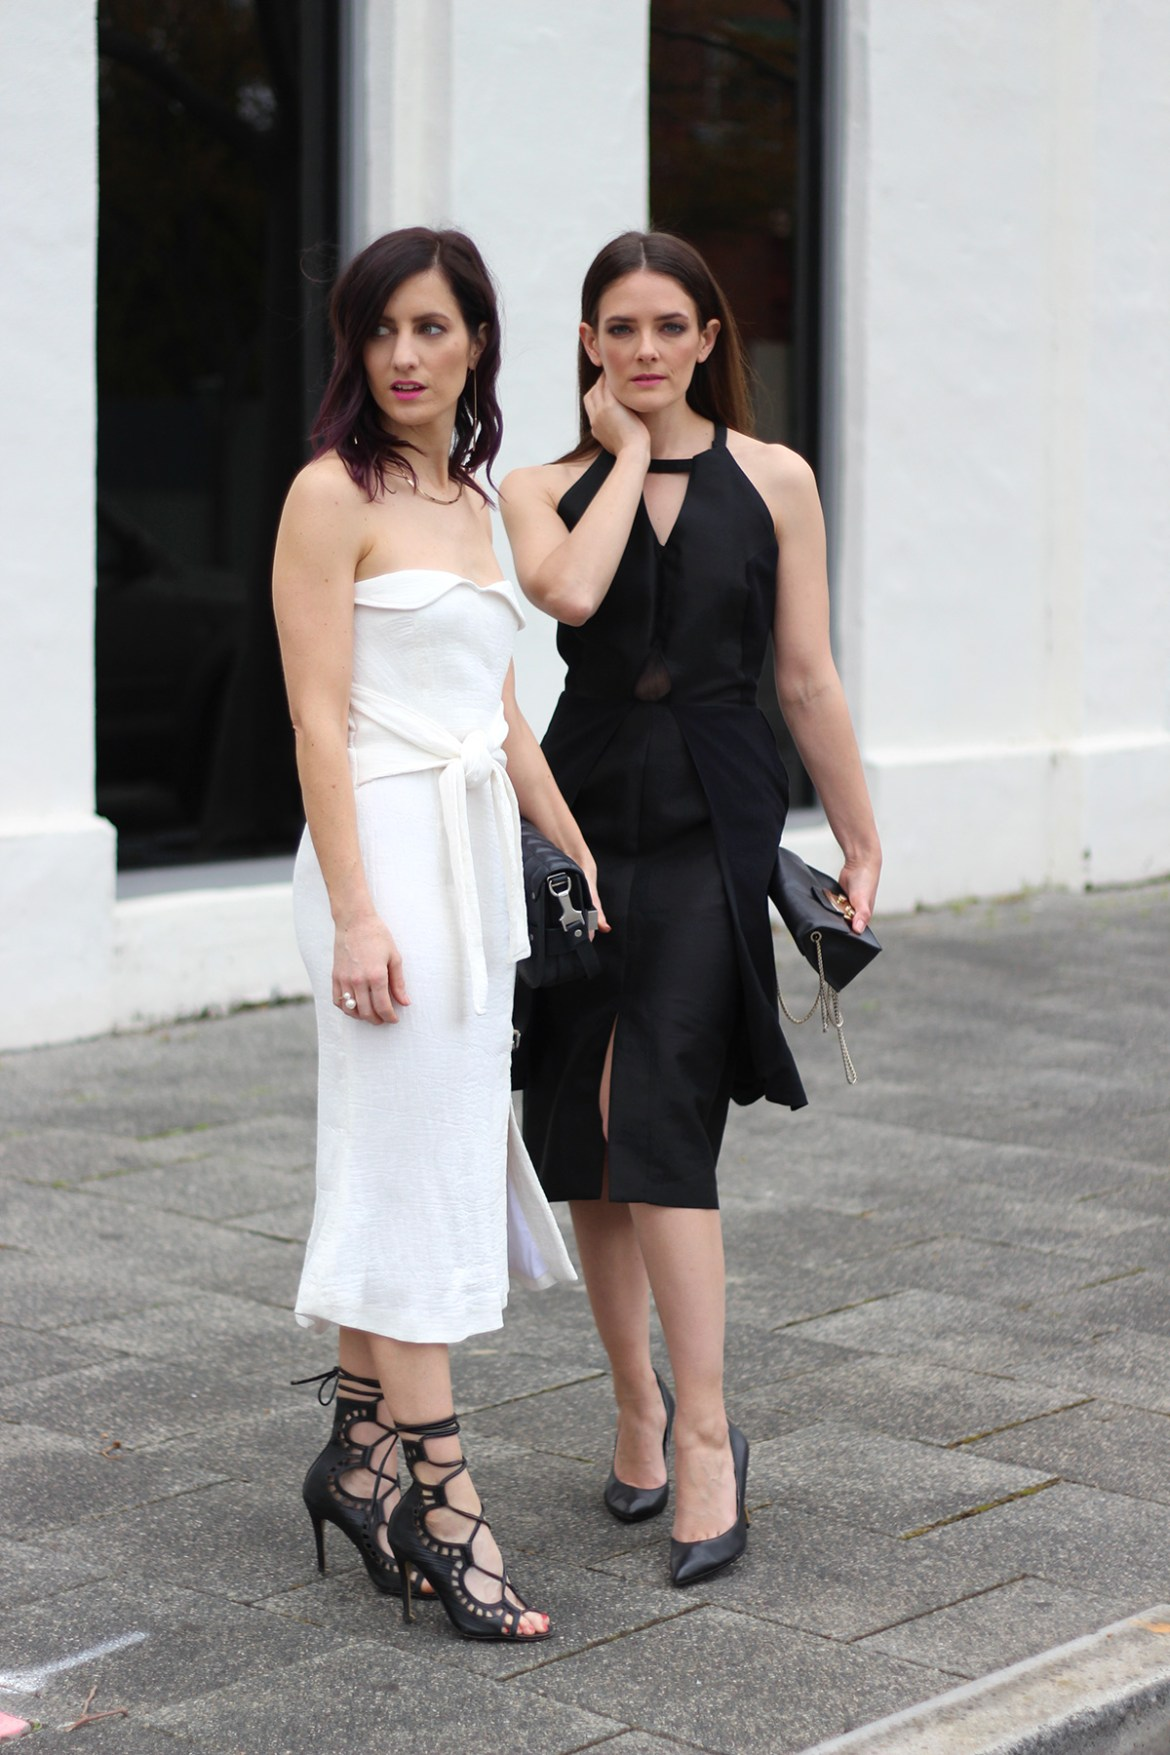 Perth fashion bloggers She Does (left) @shedoesstyle and Inspiring Wit (right) @inspiringwit in Wild Horses for fashions on the field #springracing #minimal #stylebloggers